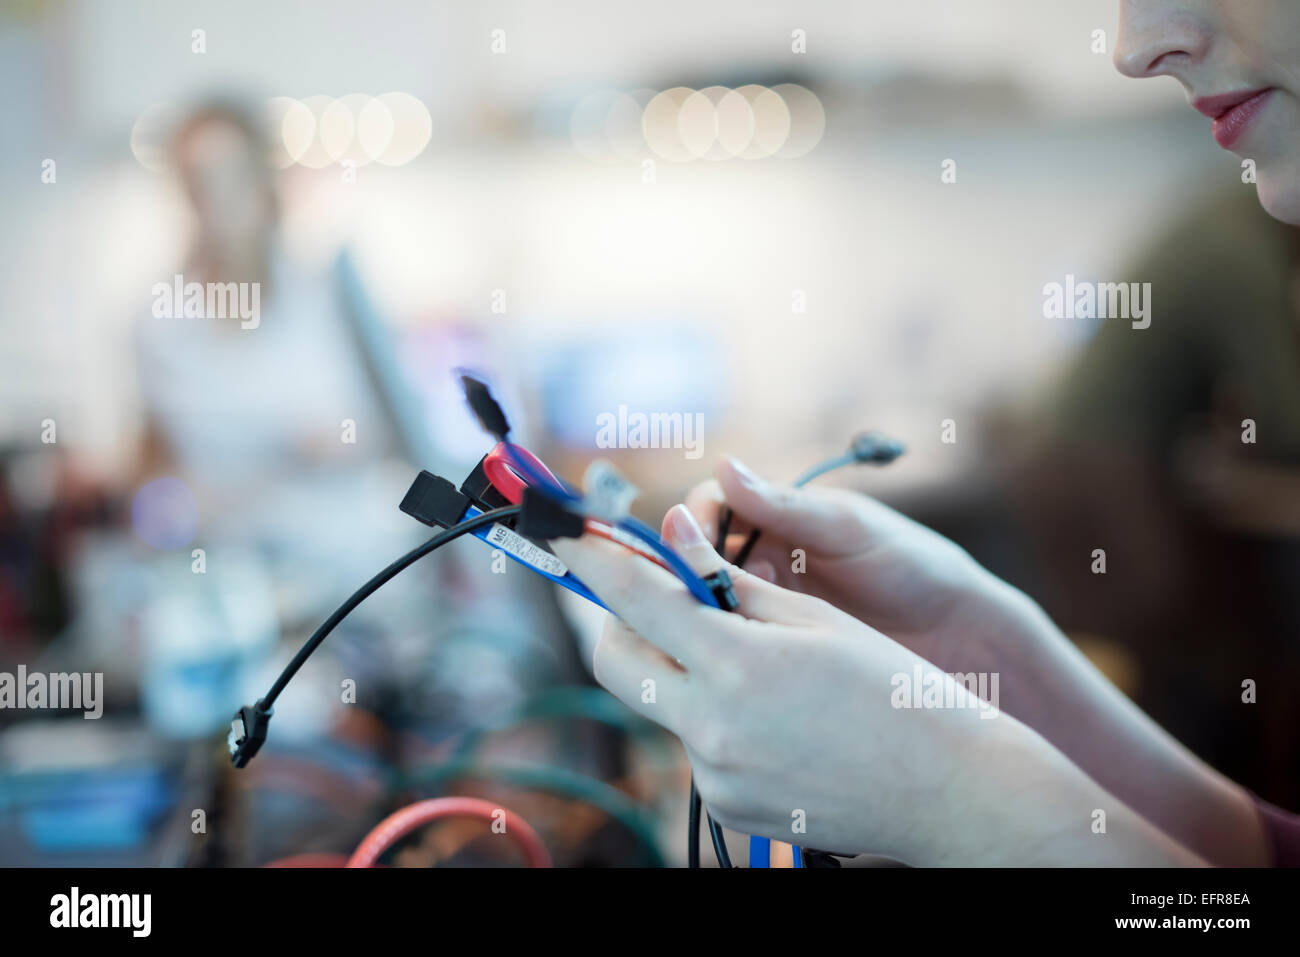 A young woman using connecting cables and usb leads in a computer repair shop. - Stock Image